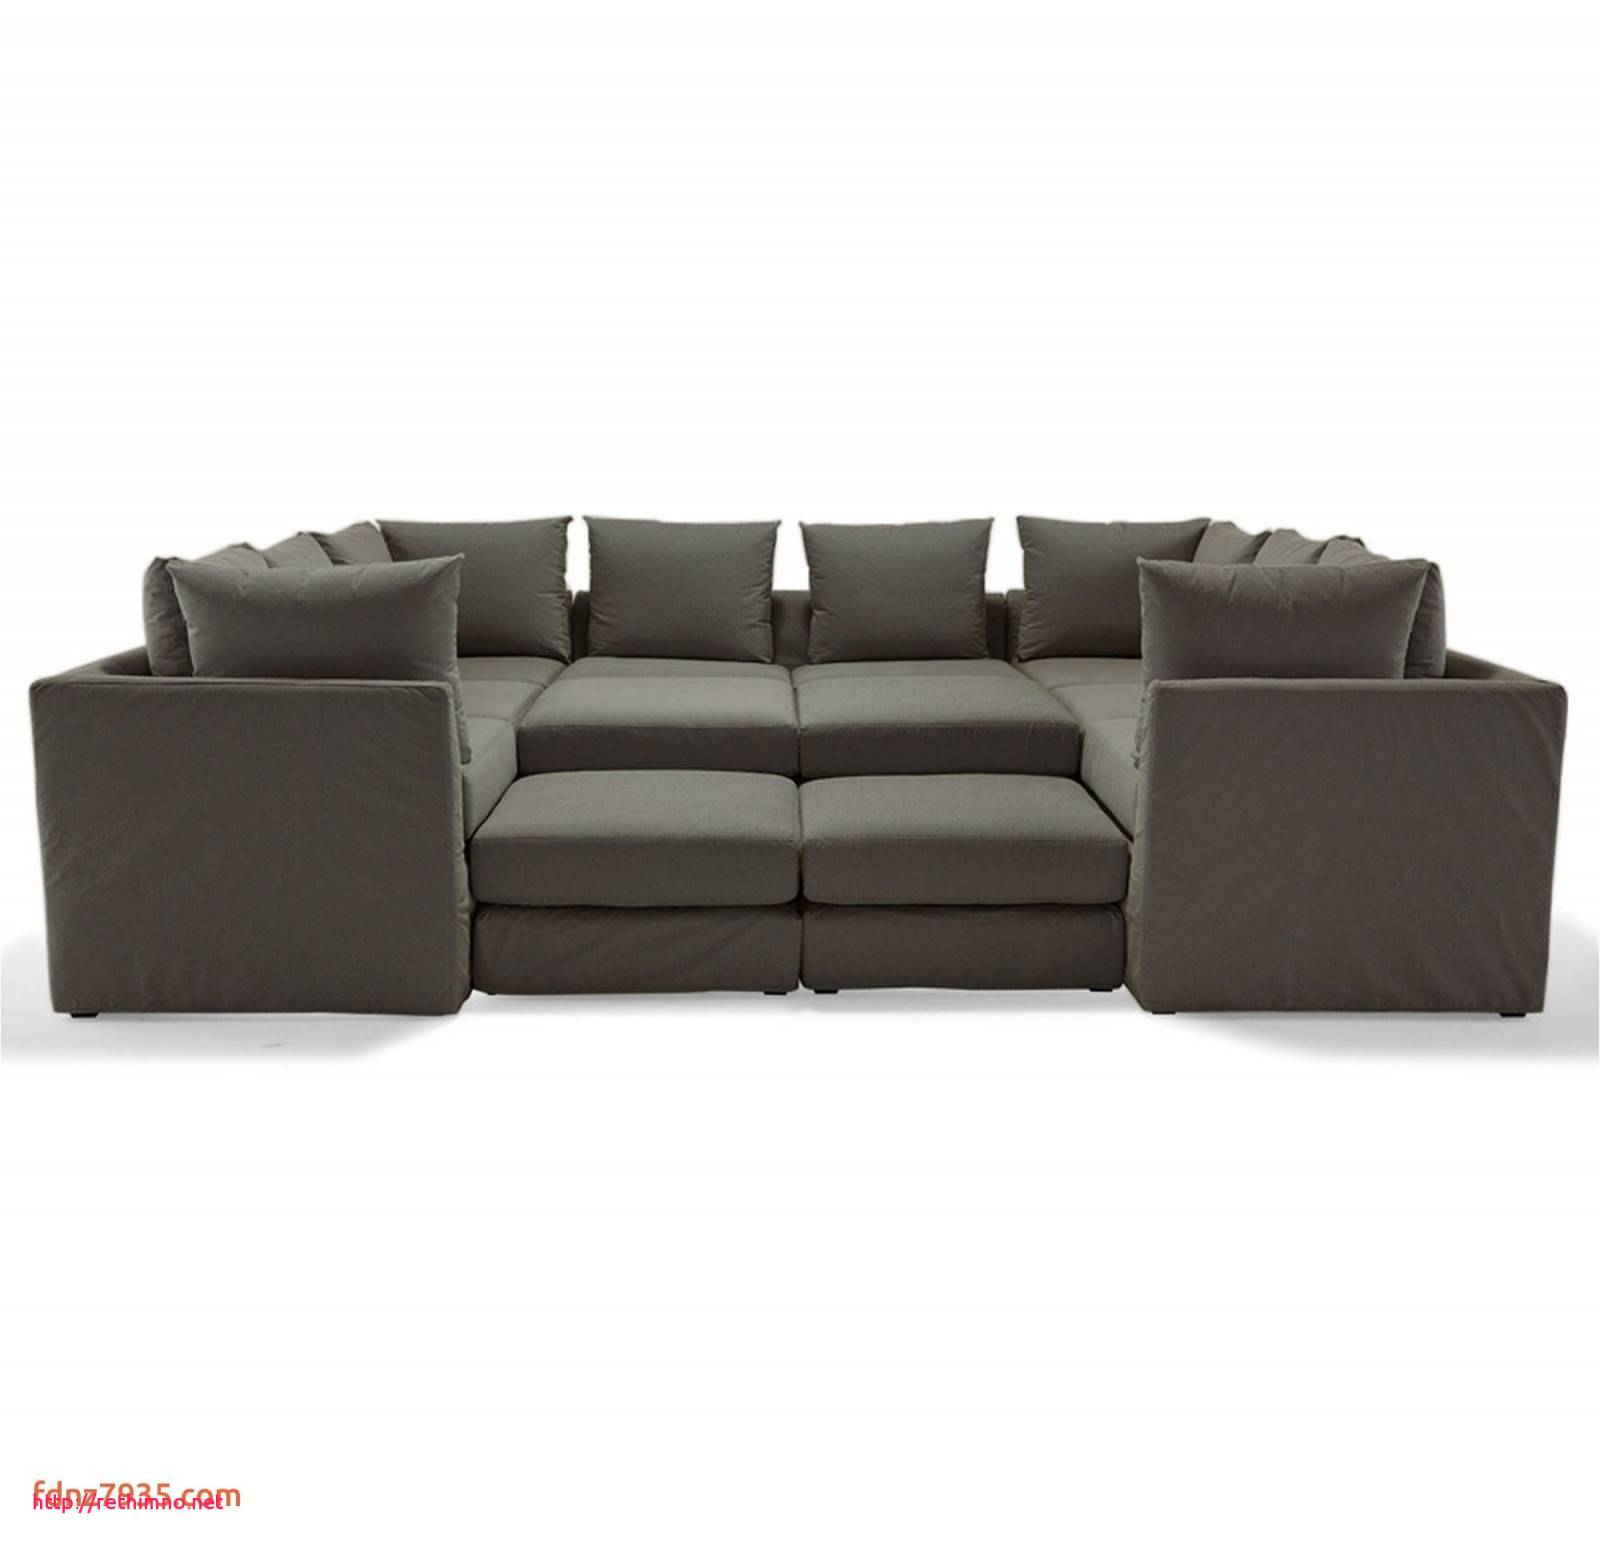 sectional couch living spaces new fresh designer sectional sofas of sectional couch living spaces